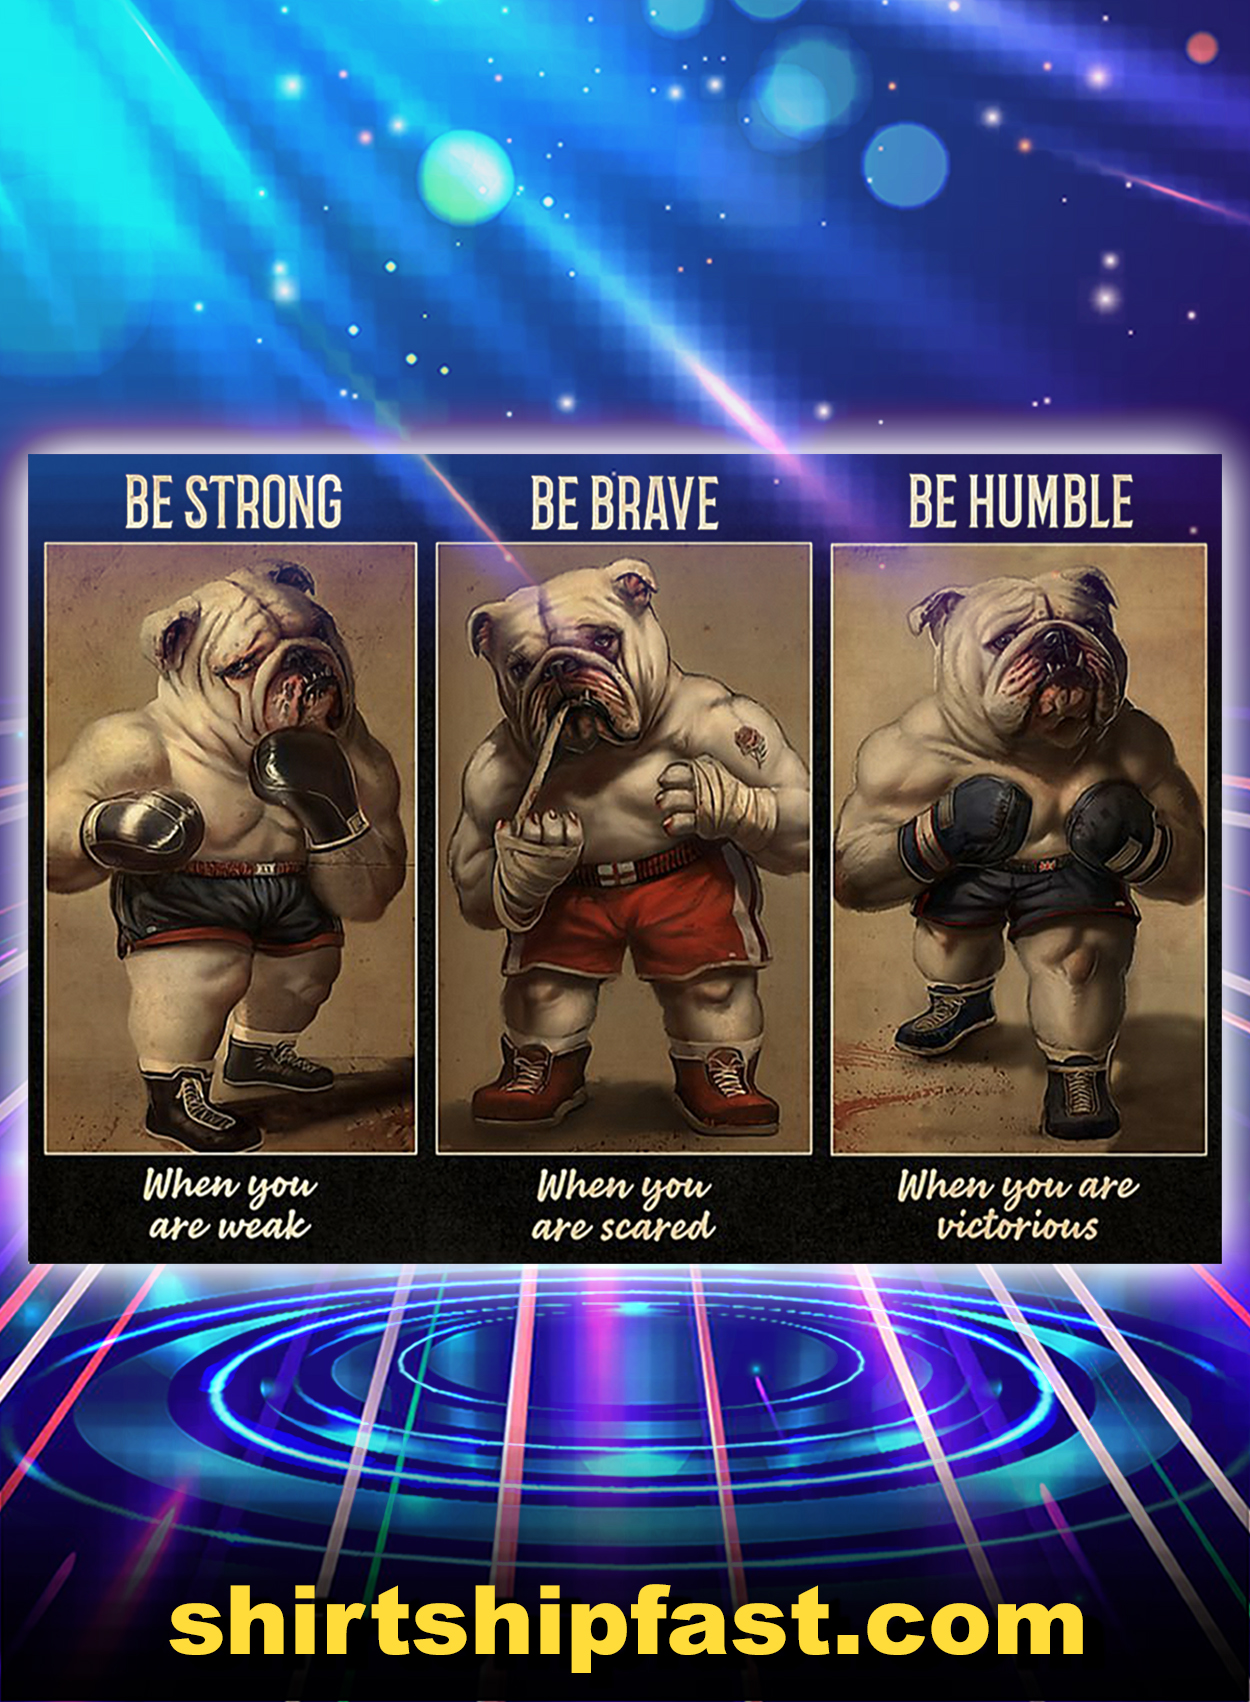 Bulldog boxer be strong be brave be humble poster - A2